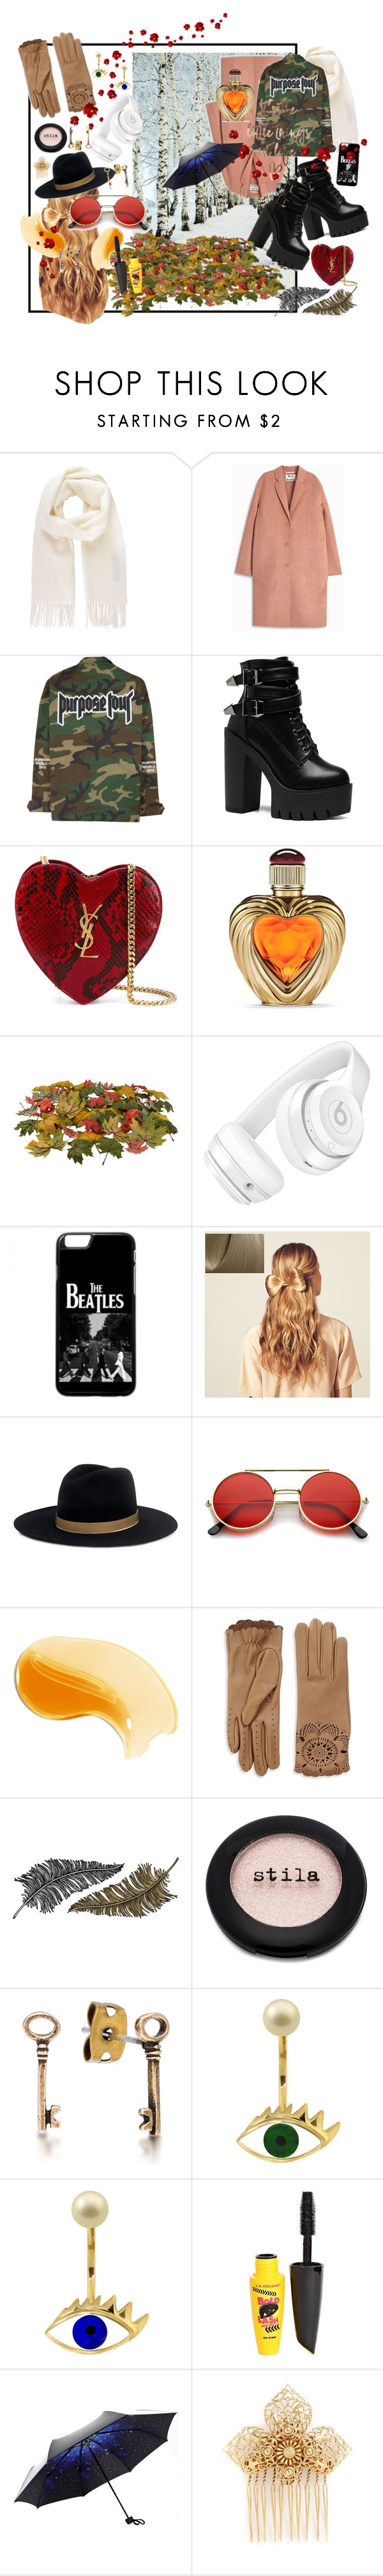 """""""It's All About the little things"""" by claire-marley on Polyvore featuring Vivienne Westwood, Acne Studios, Yves Saint Laurent, Victoria's Secret, Beats by Dr. Dre, Hershesons, Janessa Leone, Burberry, Paperself and Stila"""